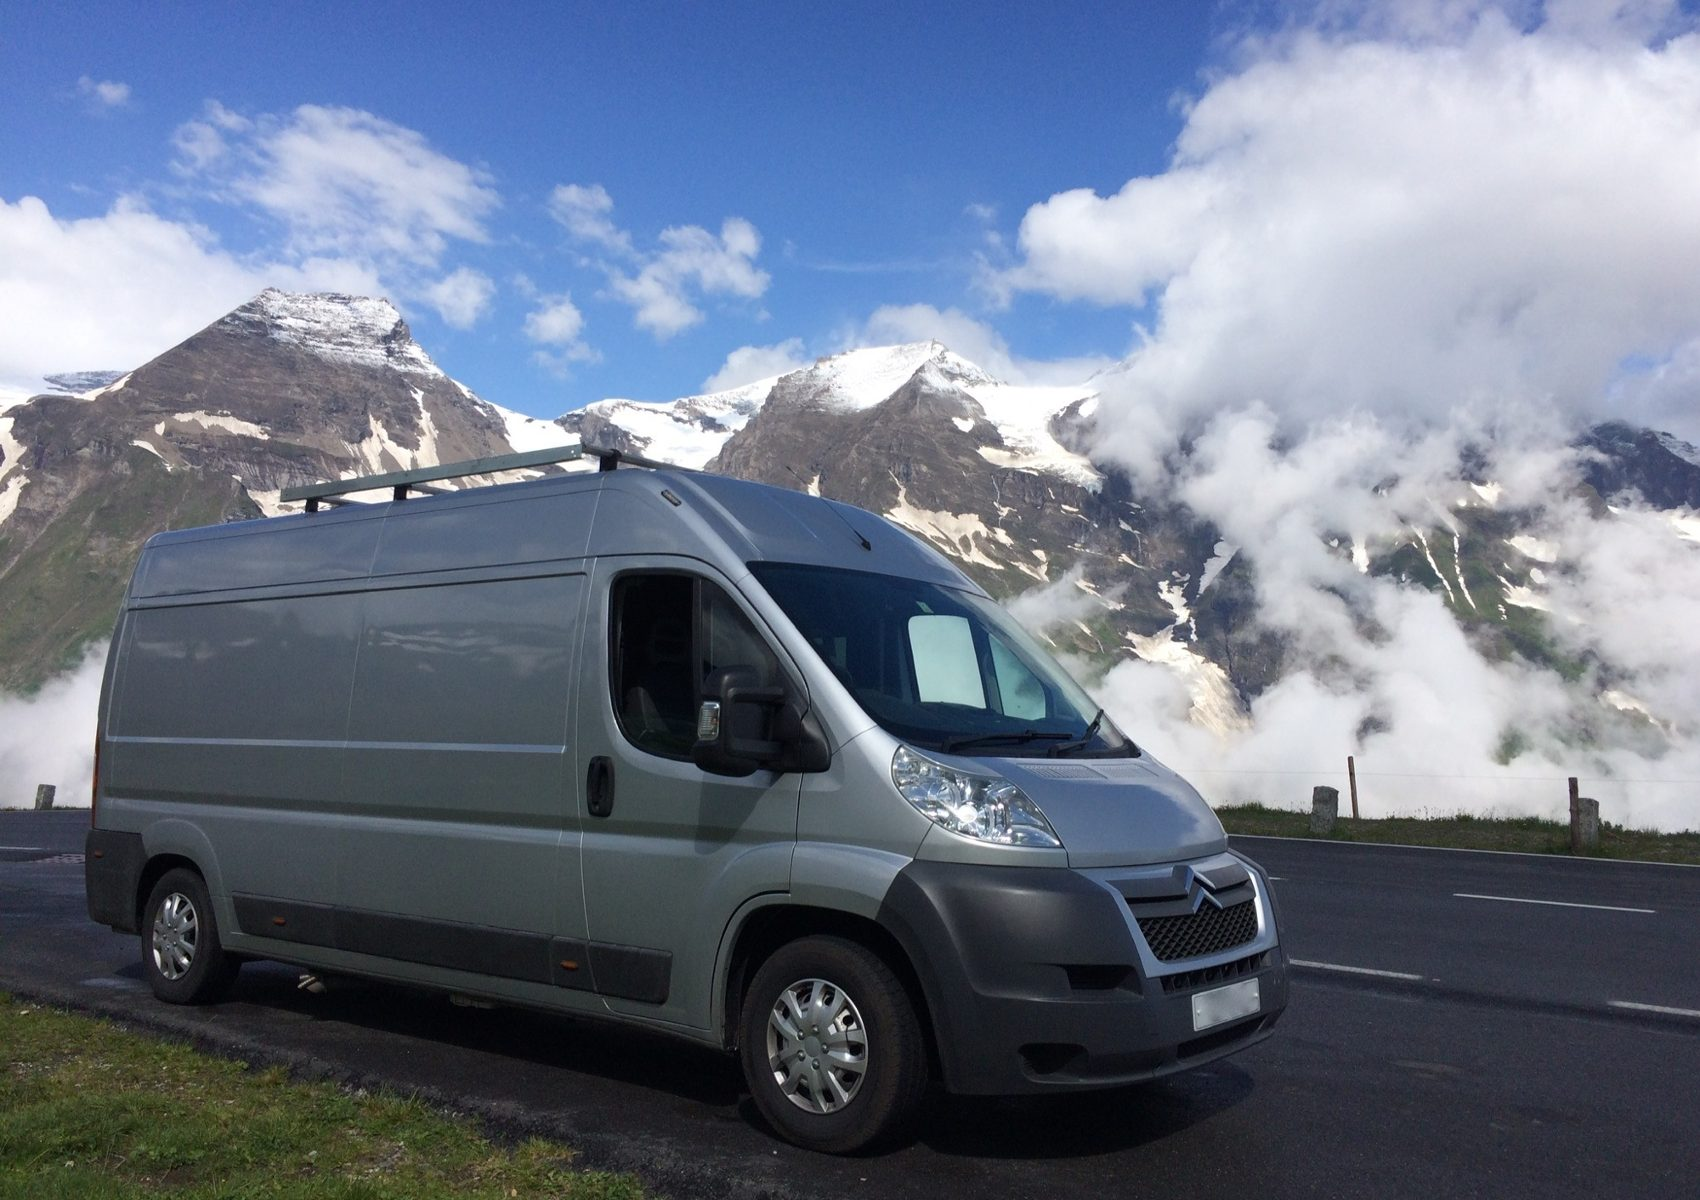 Motorhome in front of snowy mountains. Road Trip!